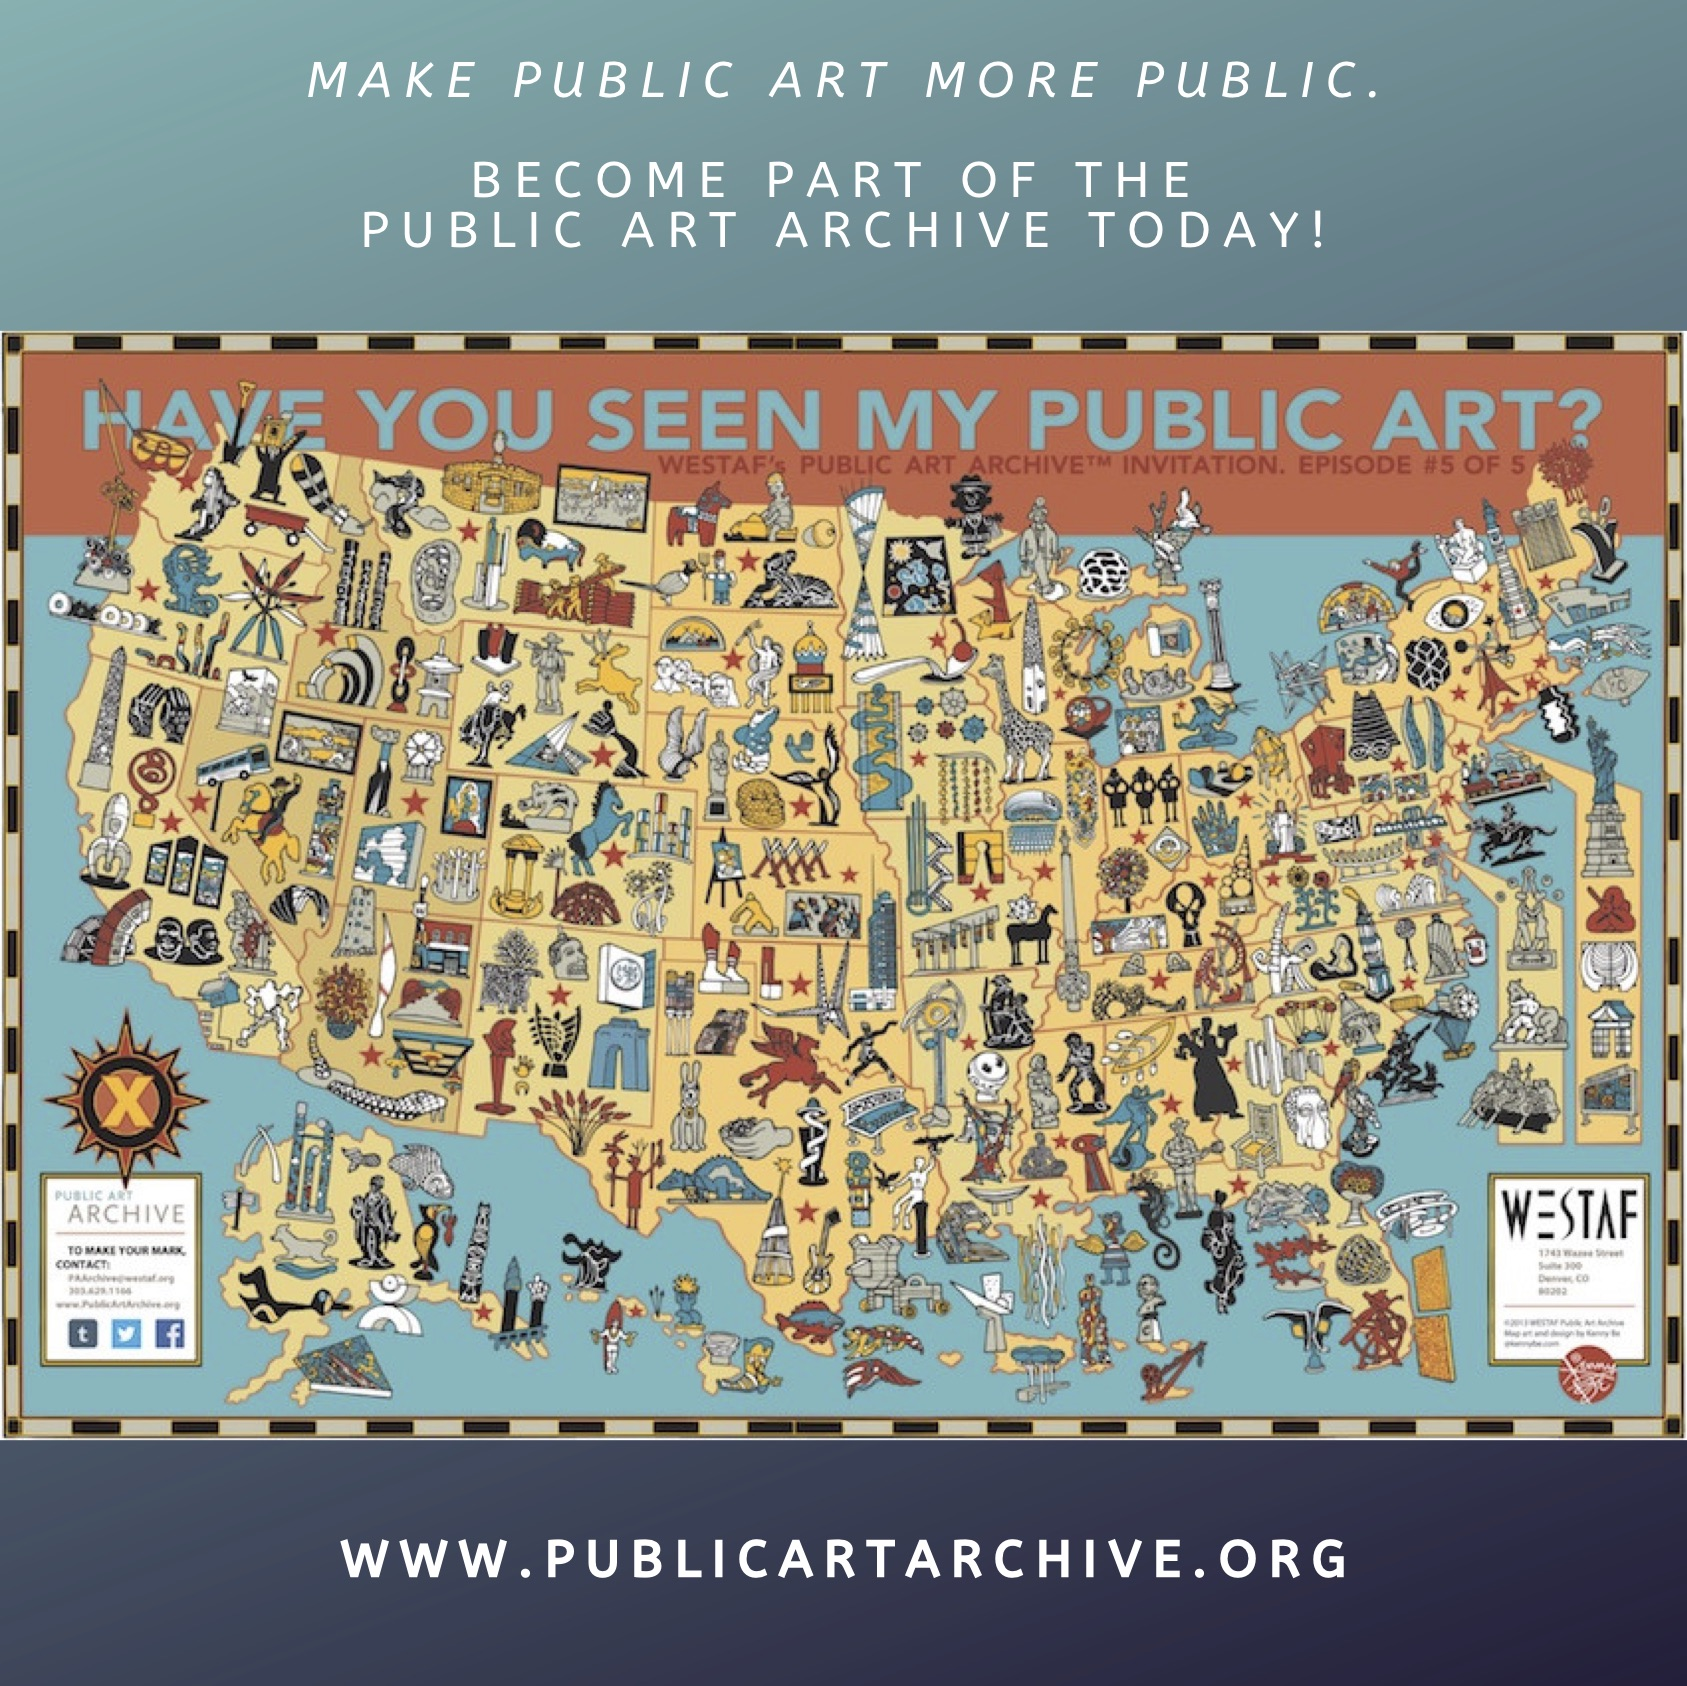 Make Public Art More Public!